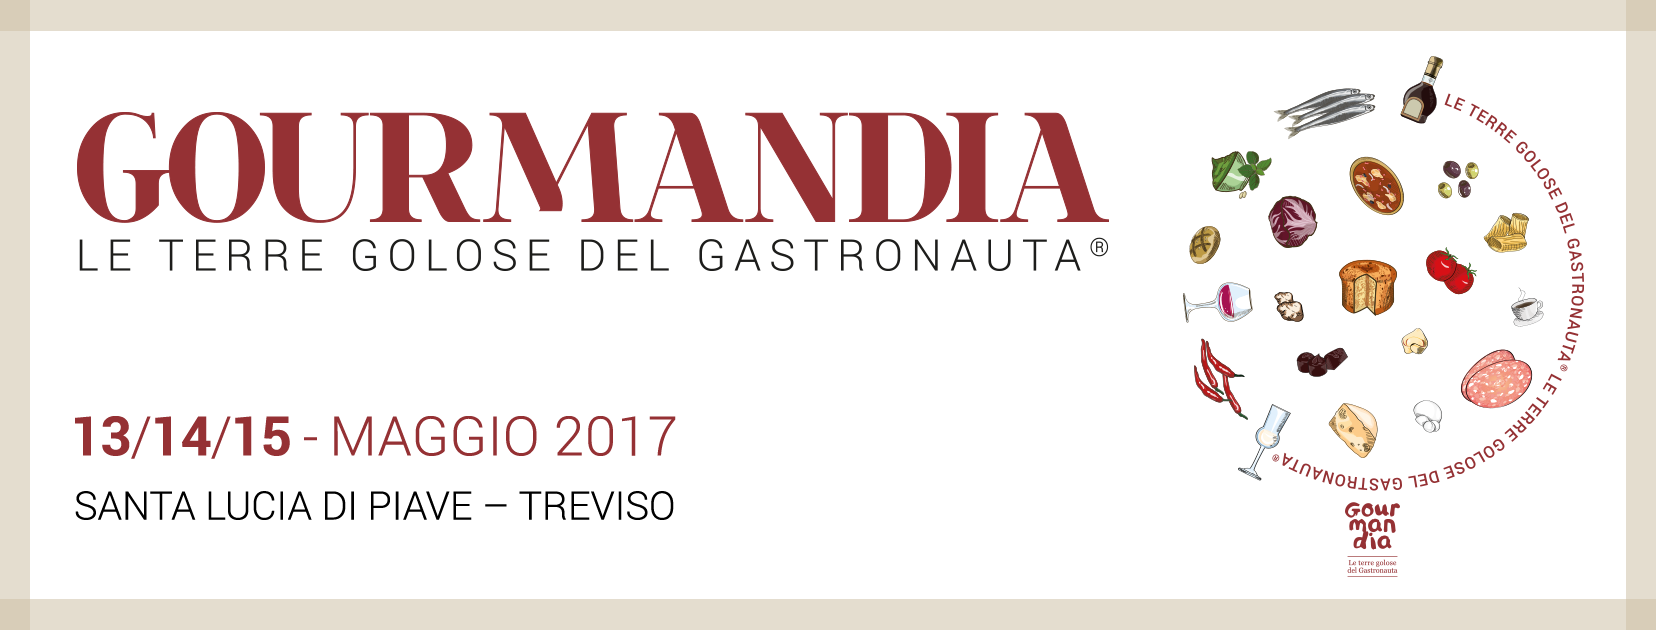 Chesud a Gourmandia 2017